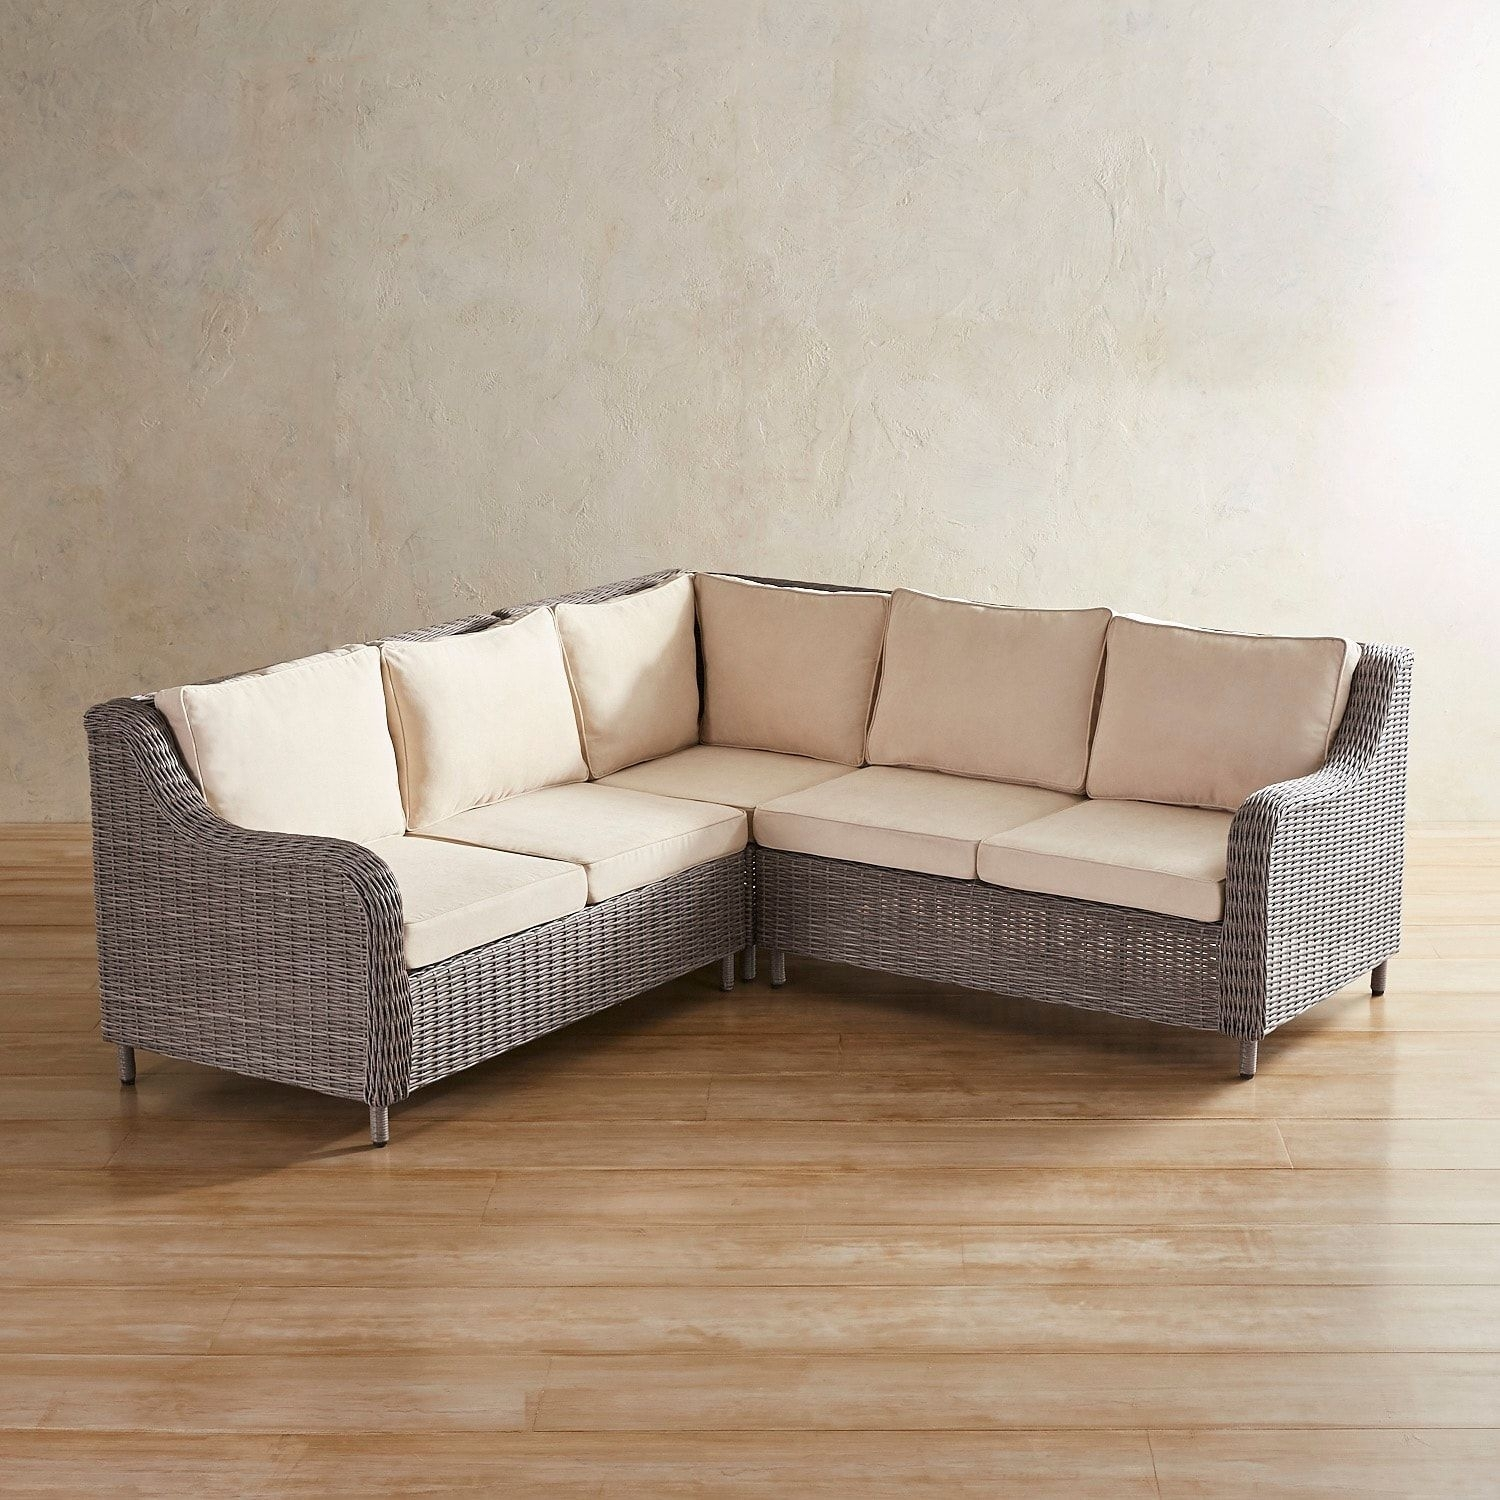 Crestview Gray 3 Piece Sectional | *patio Furniture > Sectionals Intended For Blaine 3 Piece Sectionals (Image 9 of 25)